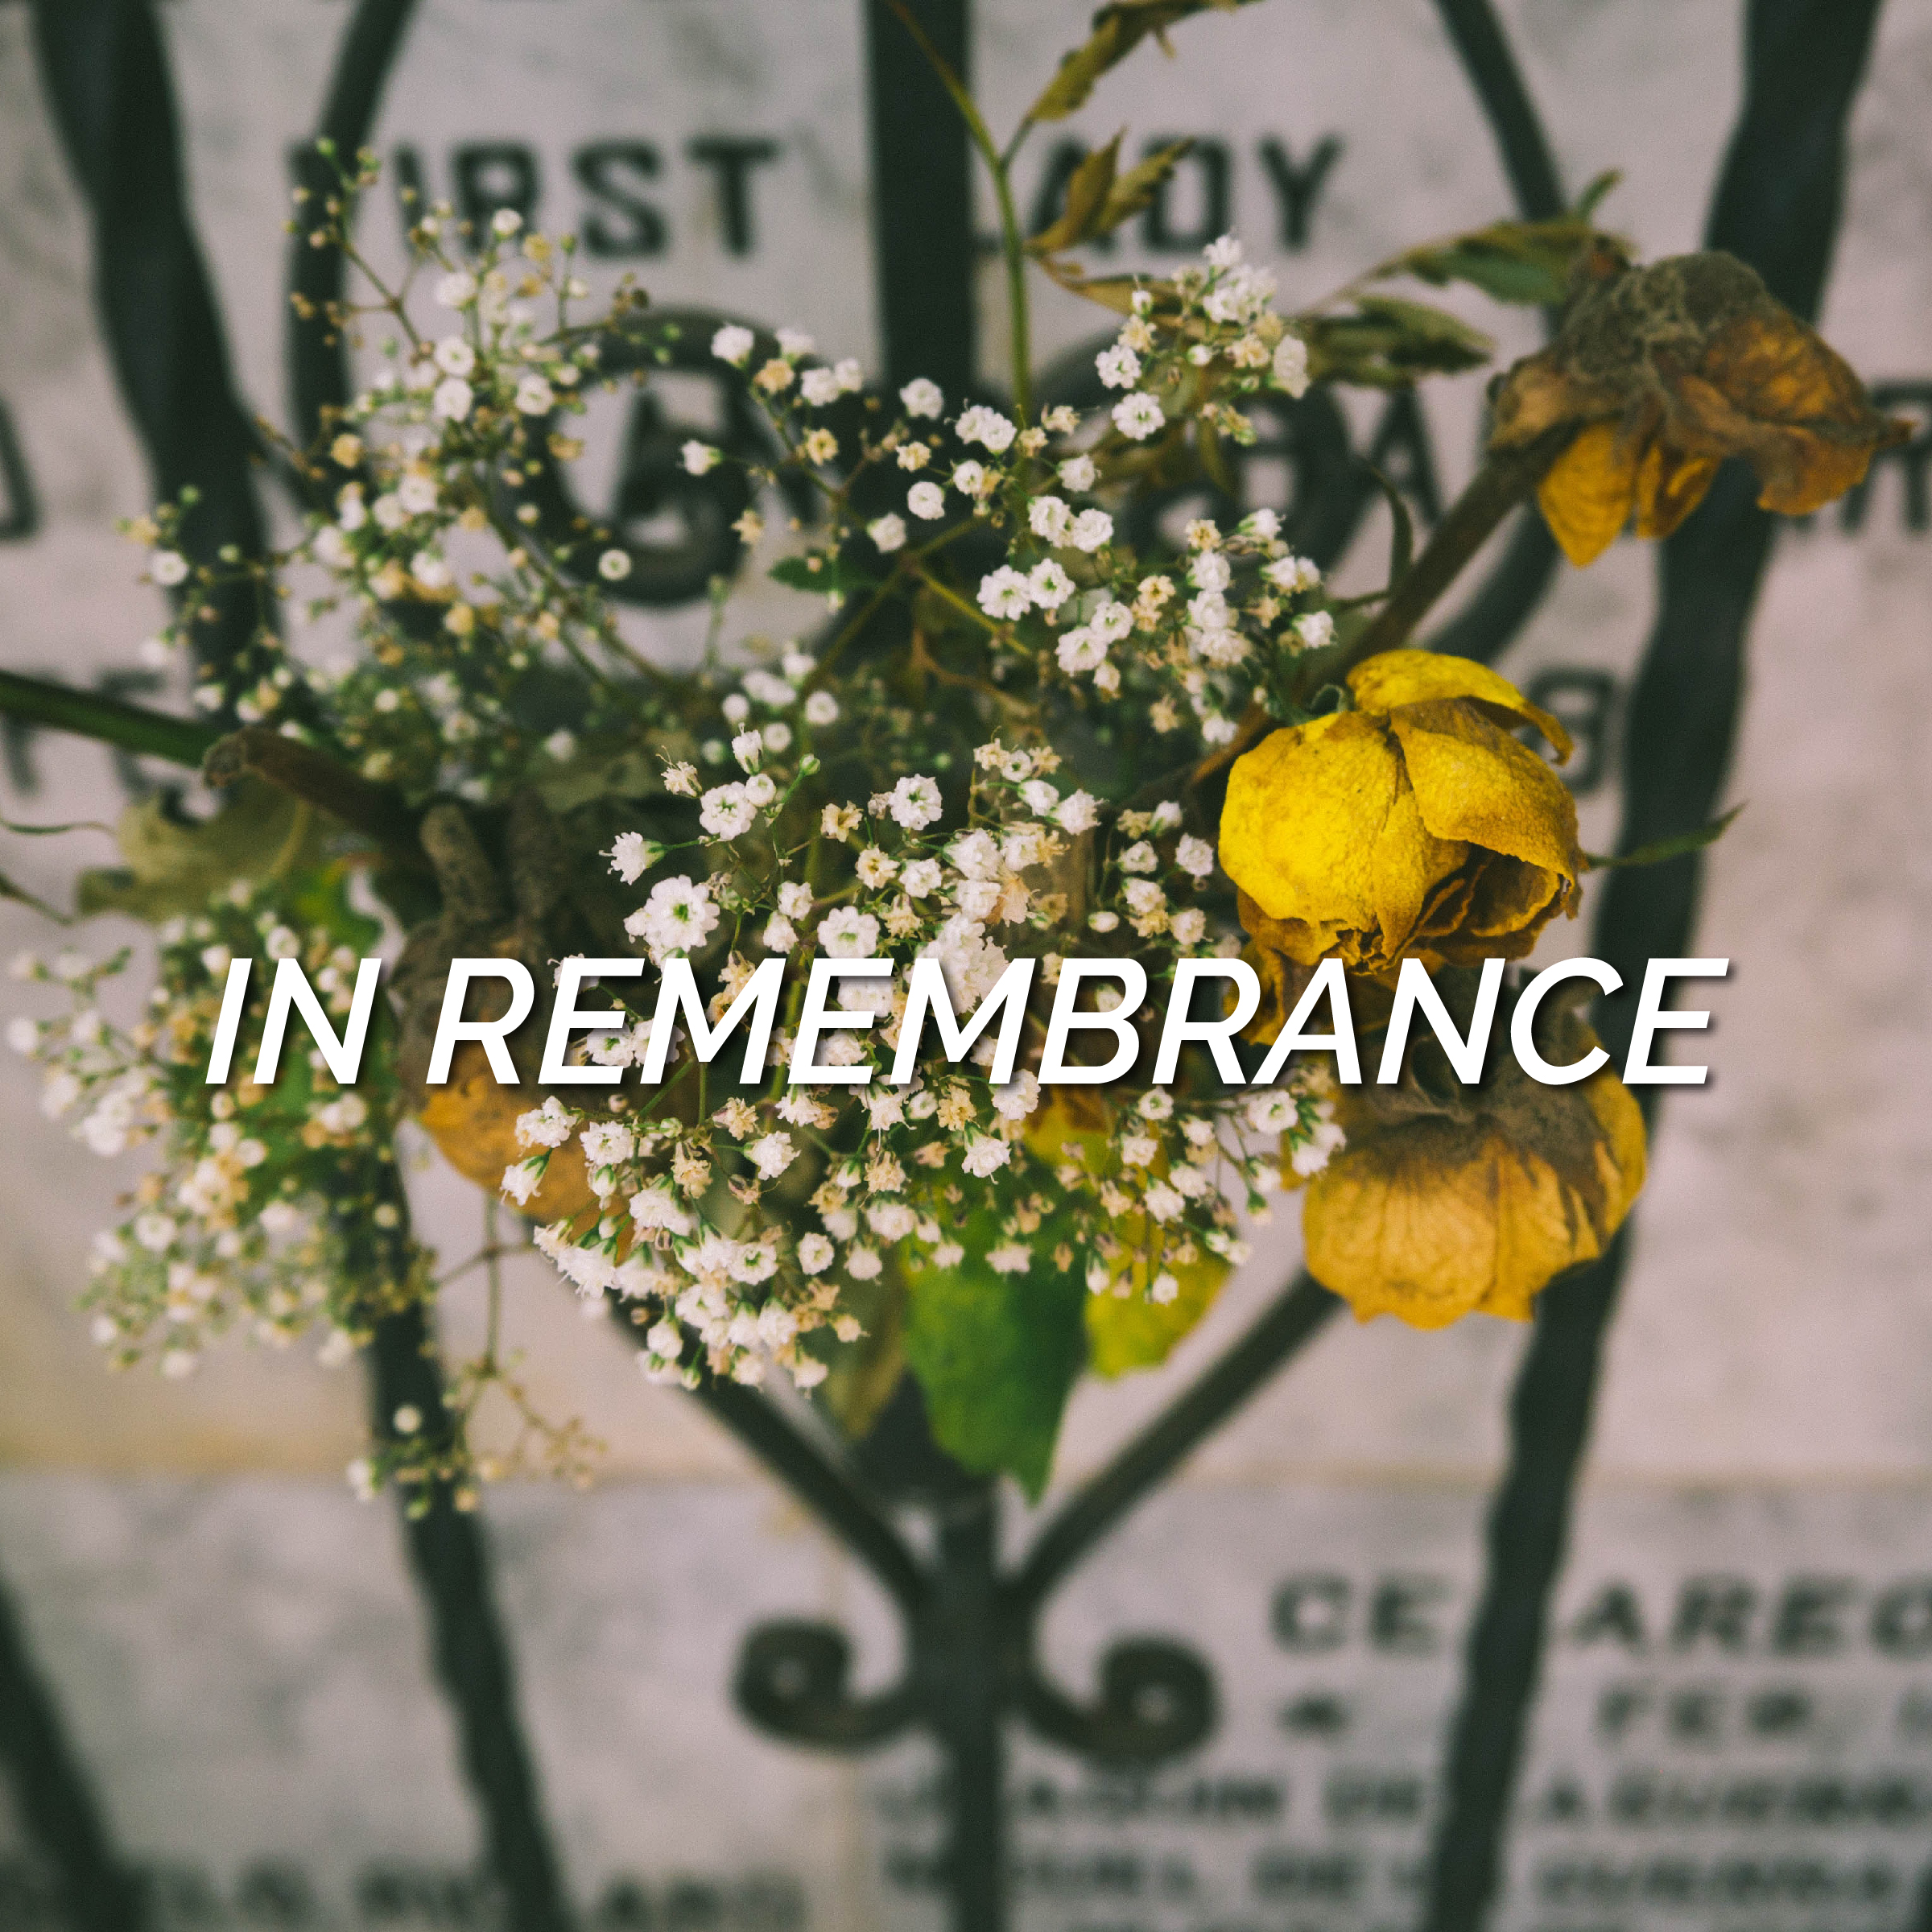 In Remembrance